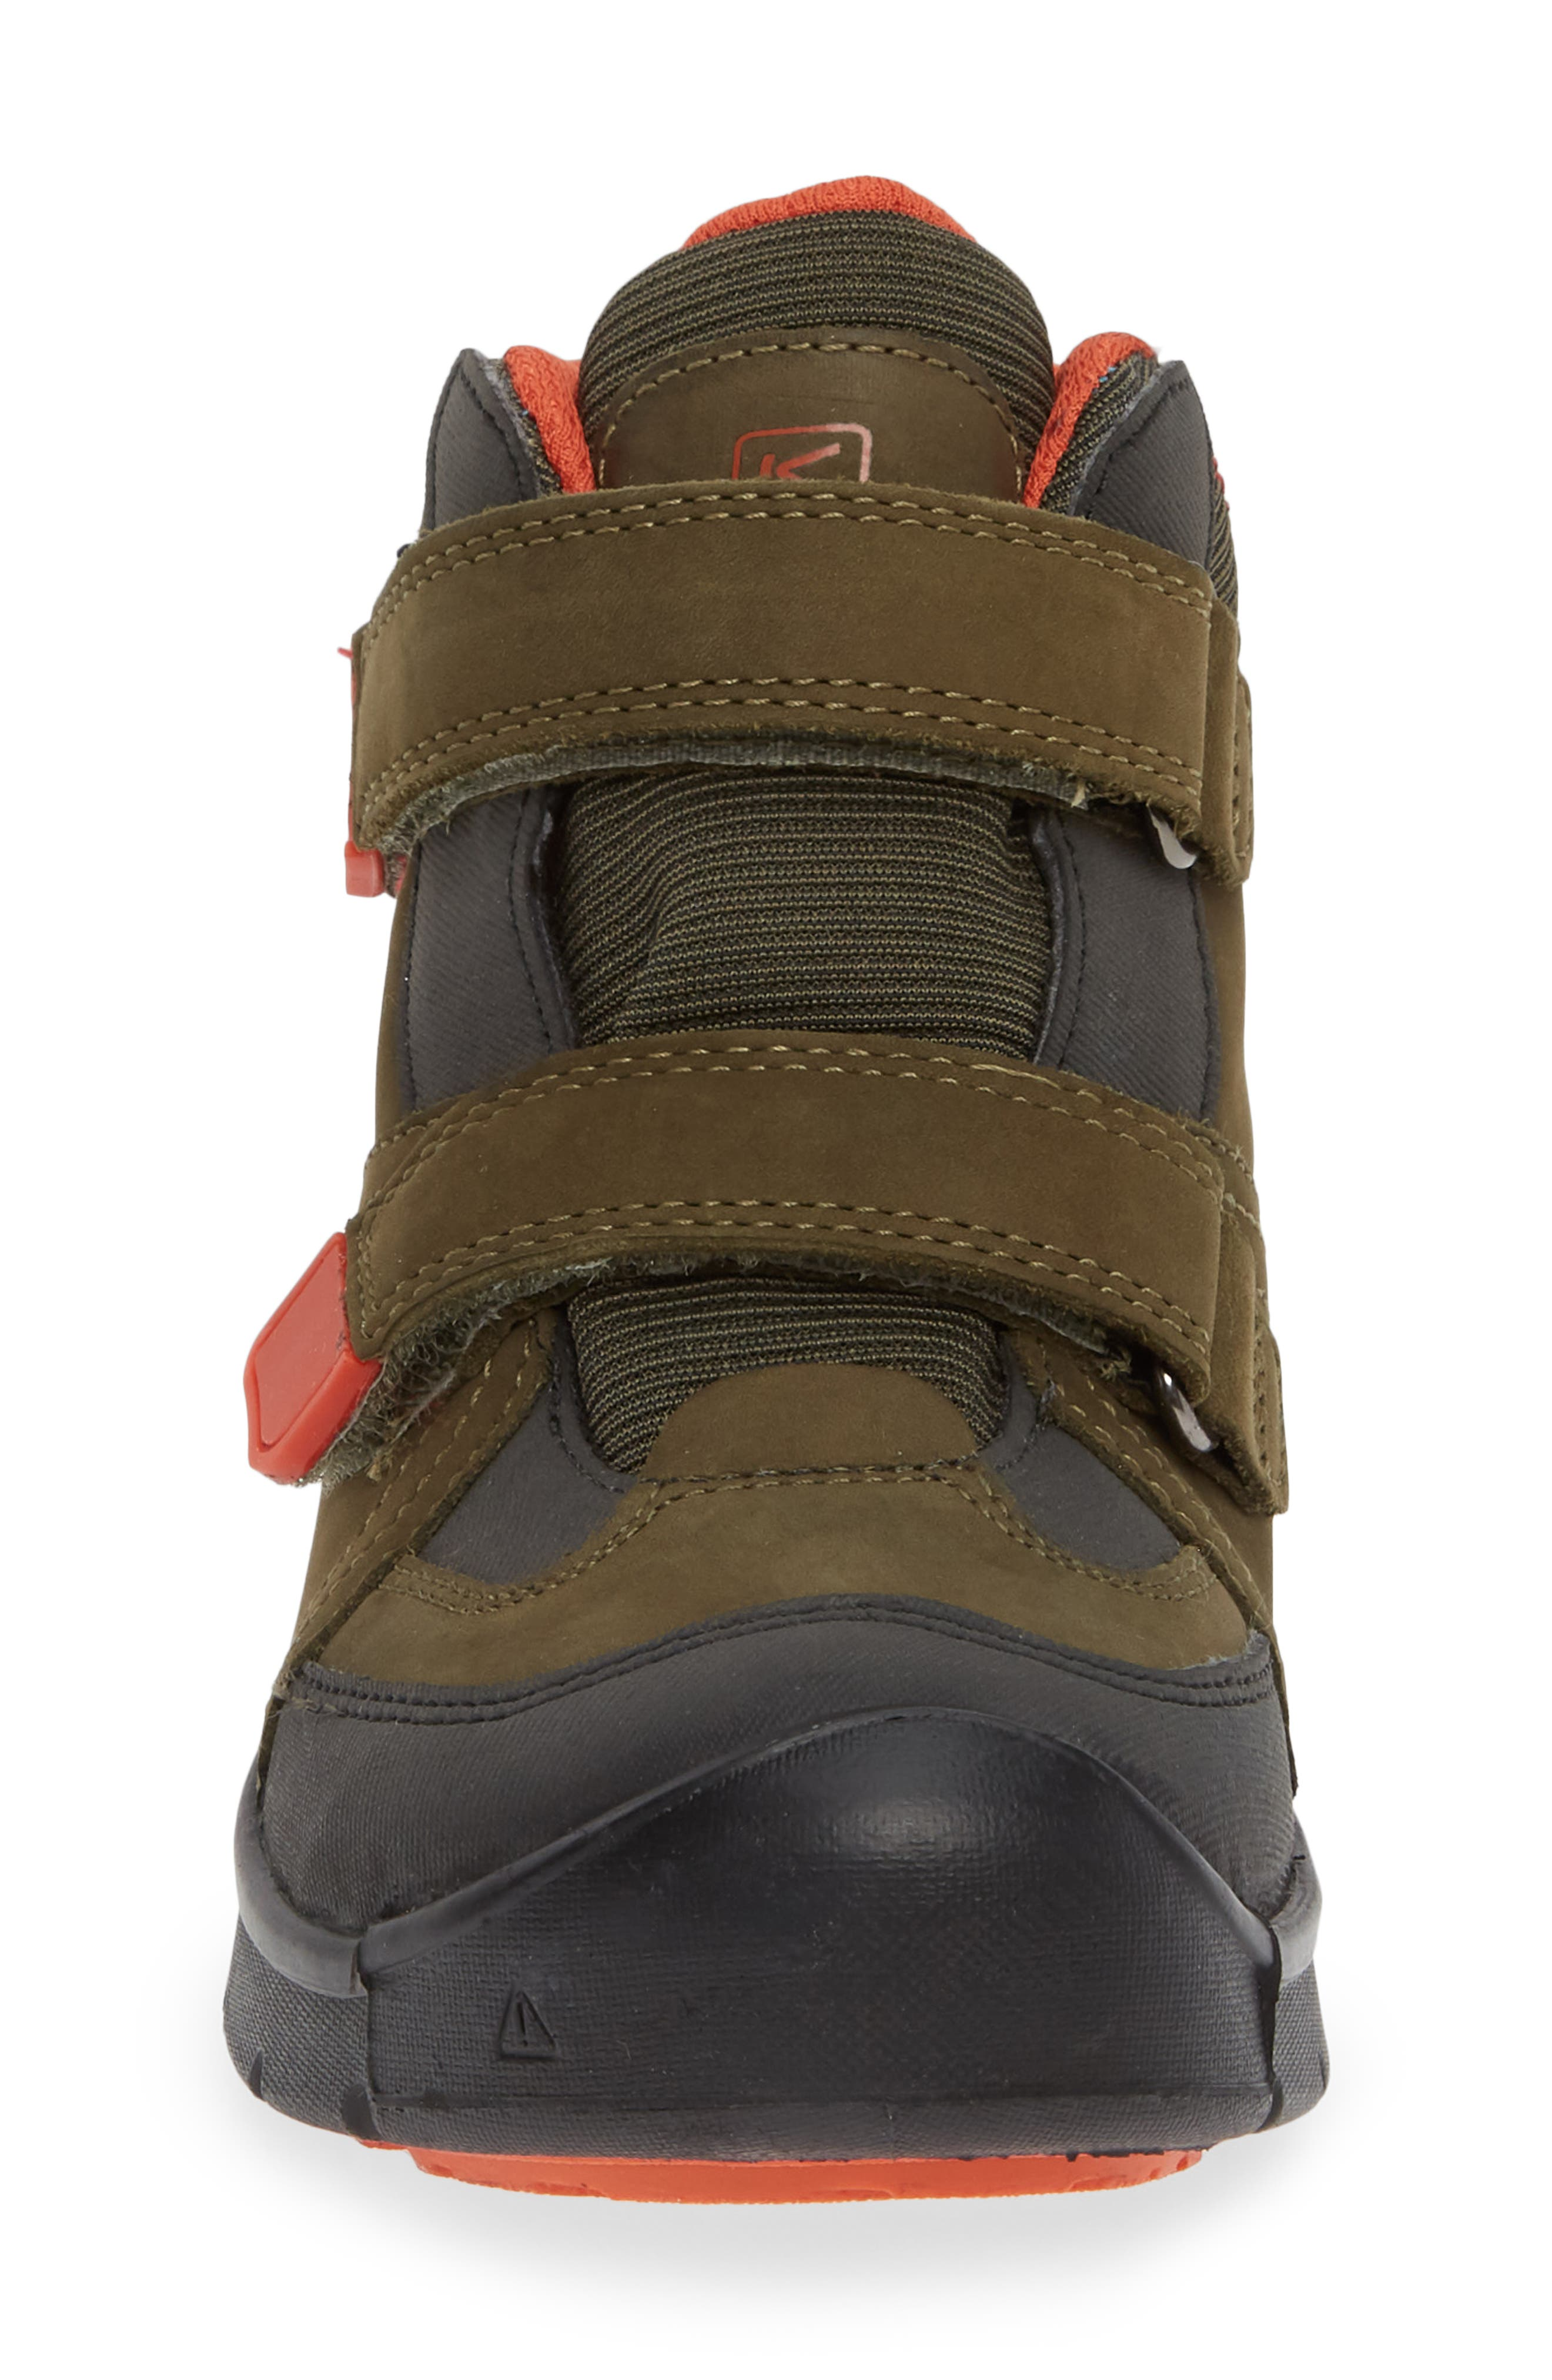 Hikeport Strap Waterproof Mid Boot,                             Alternate thumbnail 4, color,                             MARTINI OLIVE/ PUMPKIN